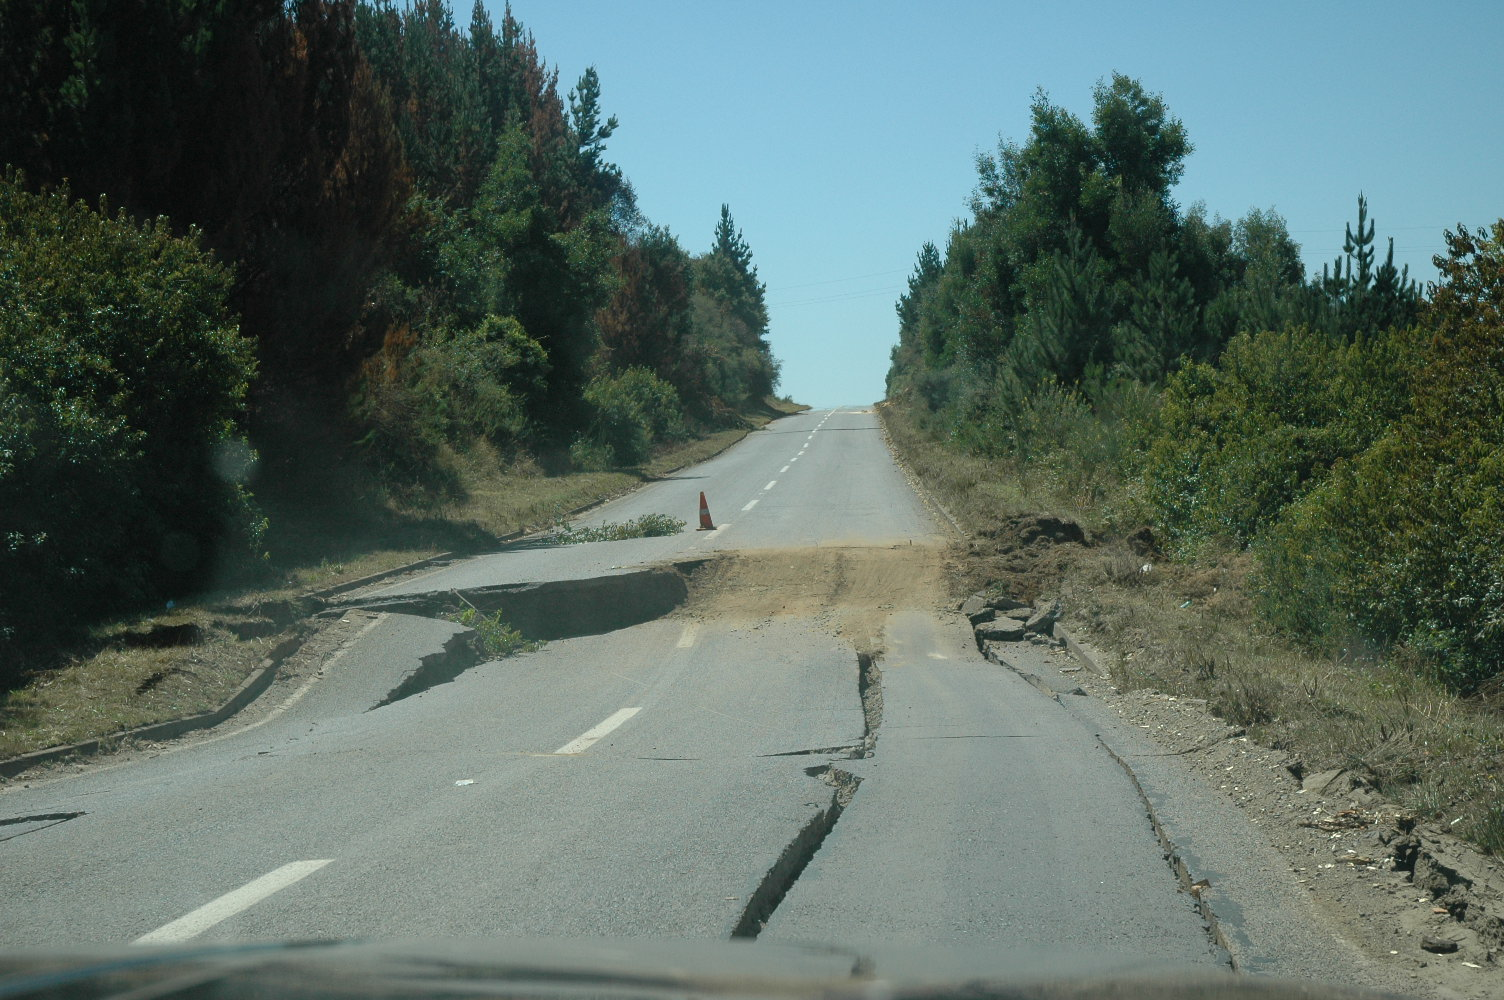 Earthquake Photos: The Long Road Home, Part One